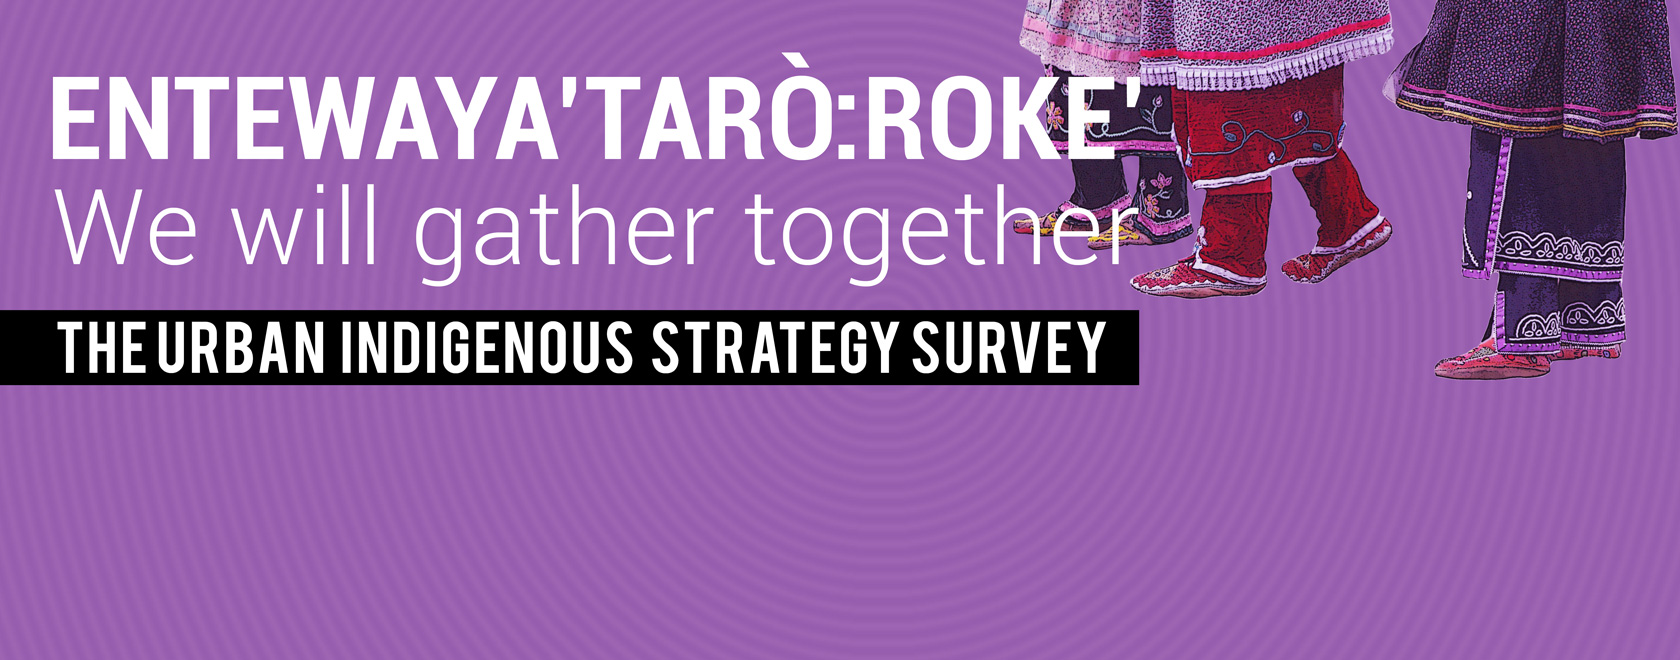 "Banner image for Indigenous Survey with text ""ENTEWAYA'TARÒ:ROKE' = WE WILL GATHER TOGETHER"""